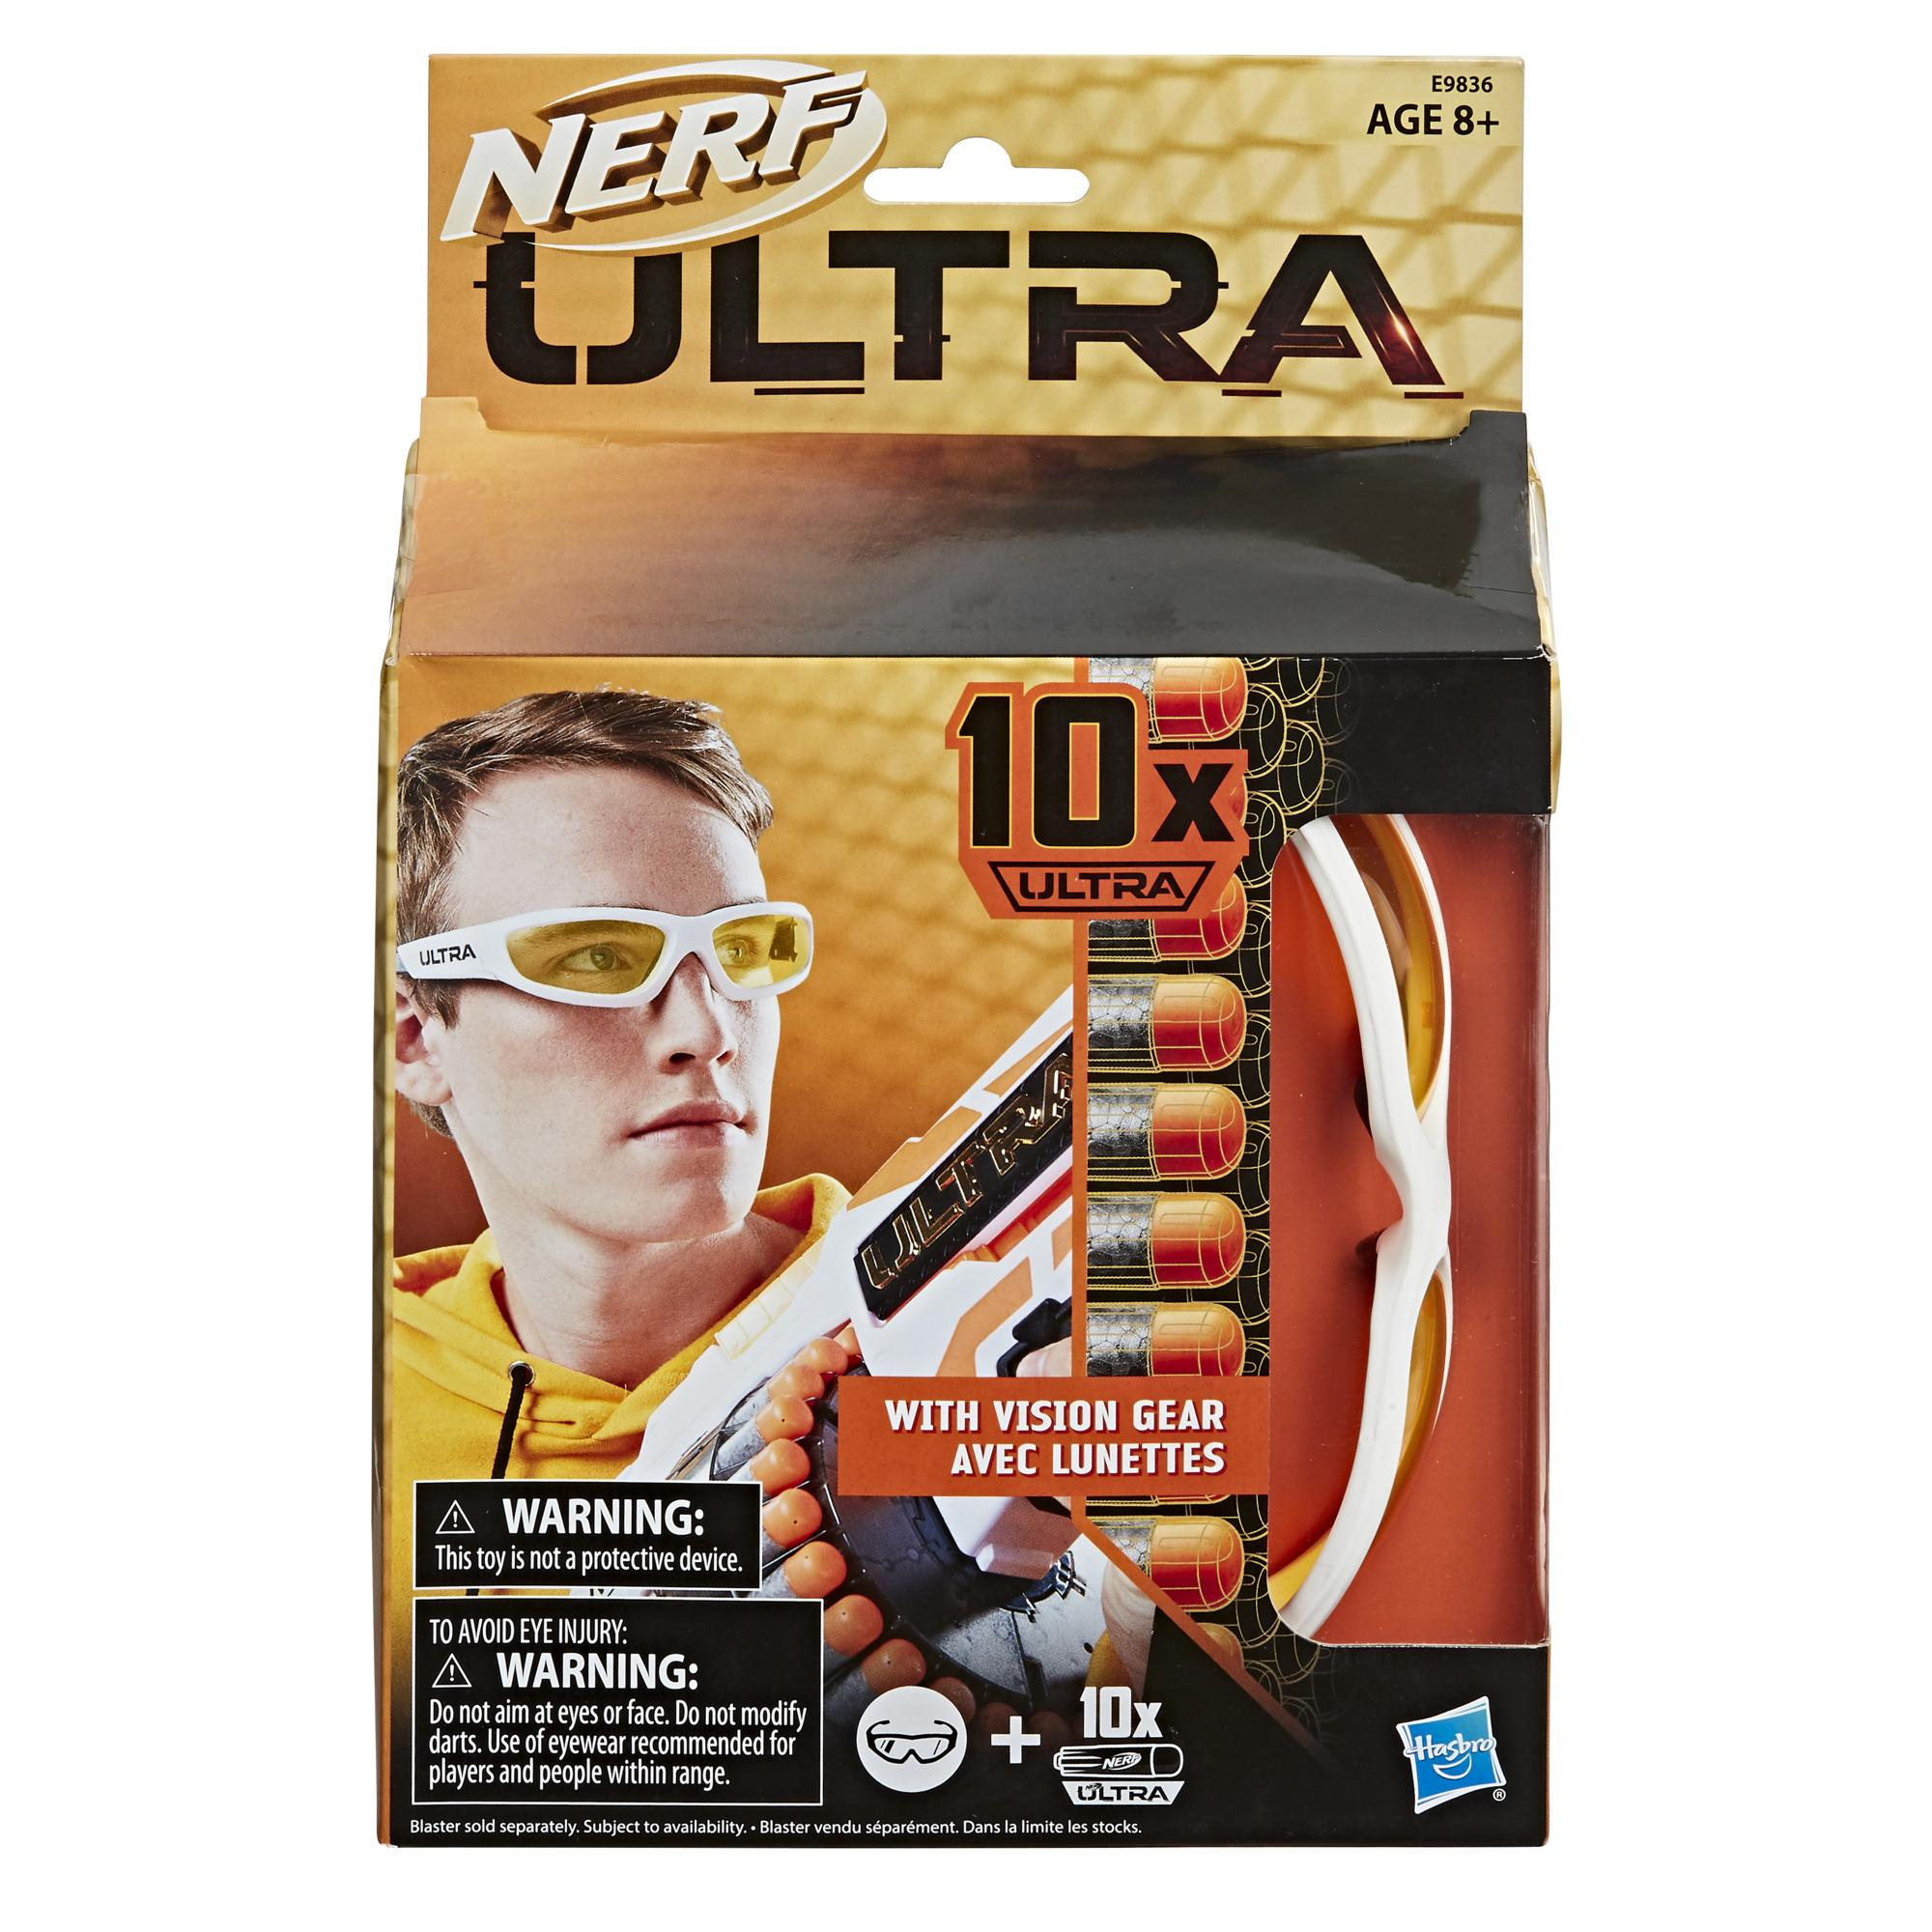 Nerf Ultra Vision Gear and 10 Nerf Ultra Darts -- Darts Compatible Only with Nerf Ultra Blasters